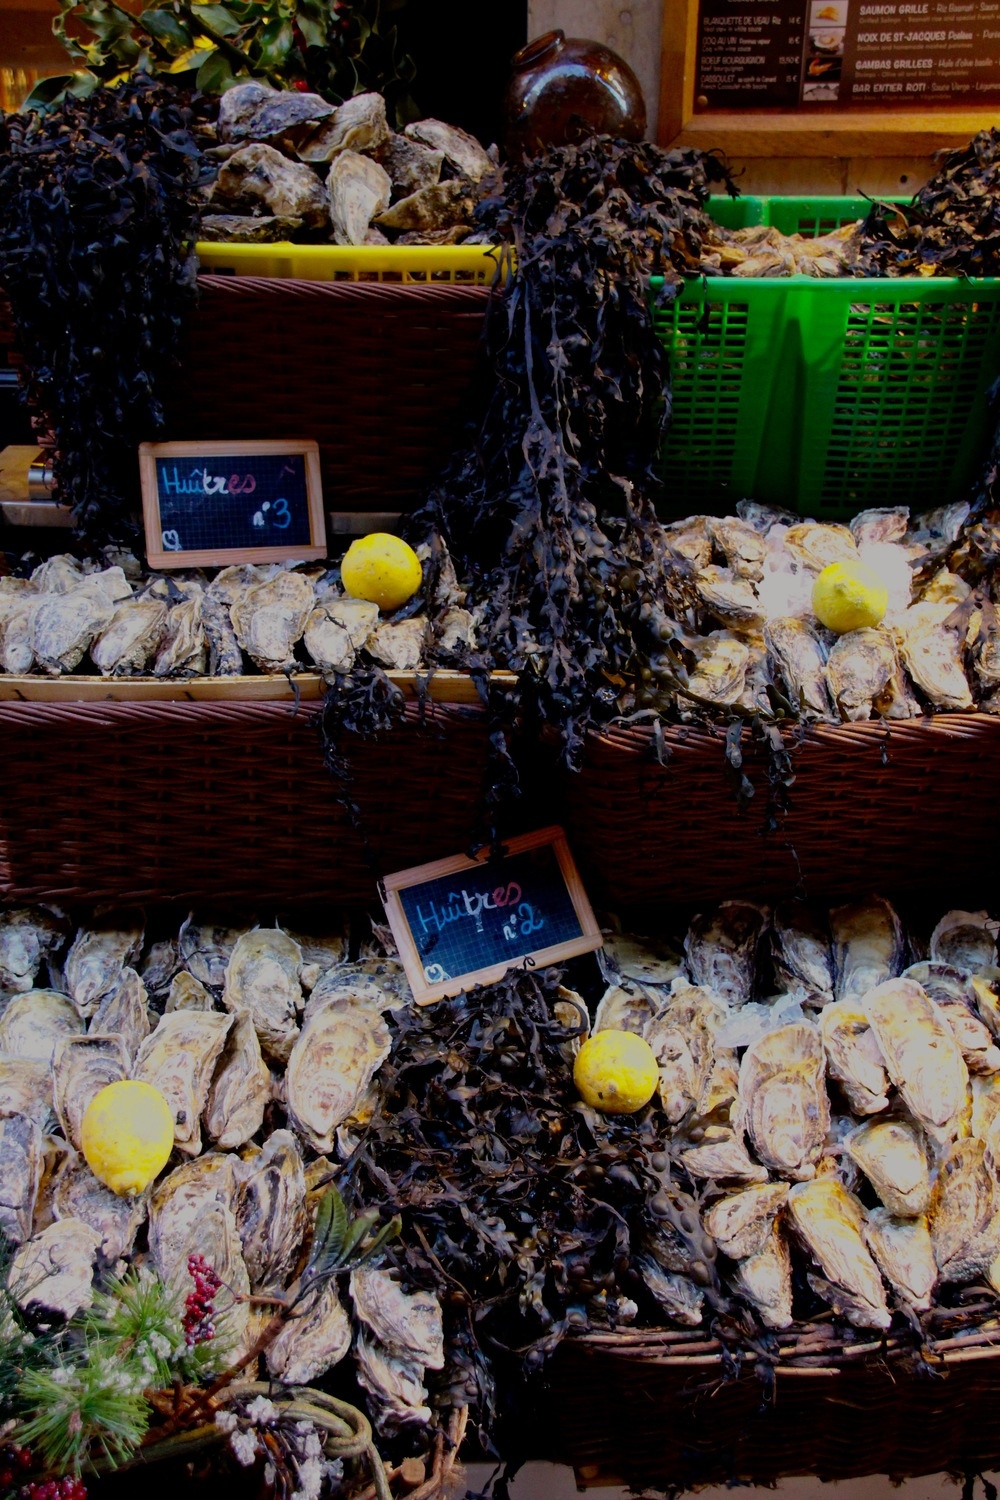 No 2 and No 3 oysters displayed in a street market.